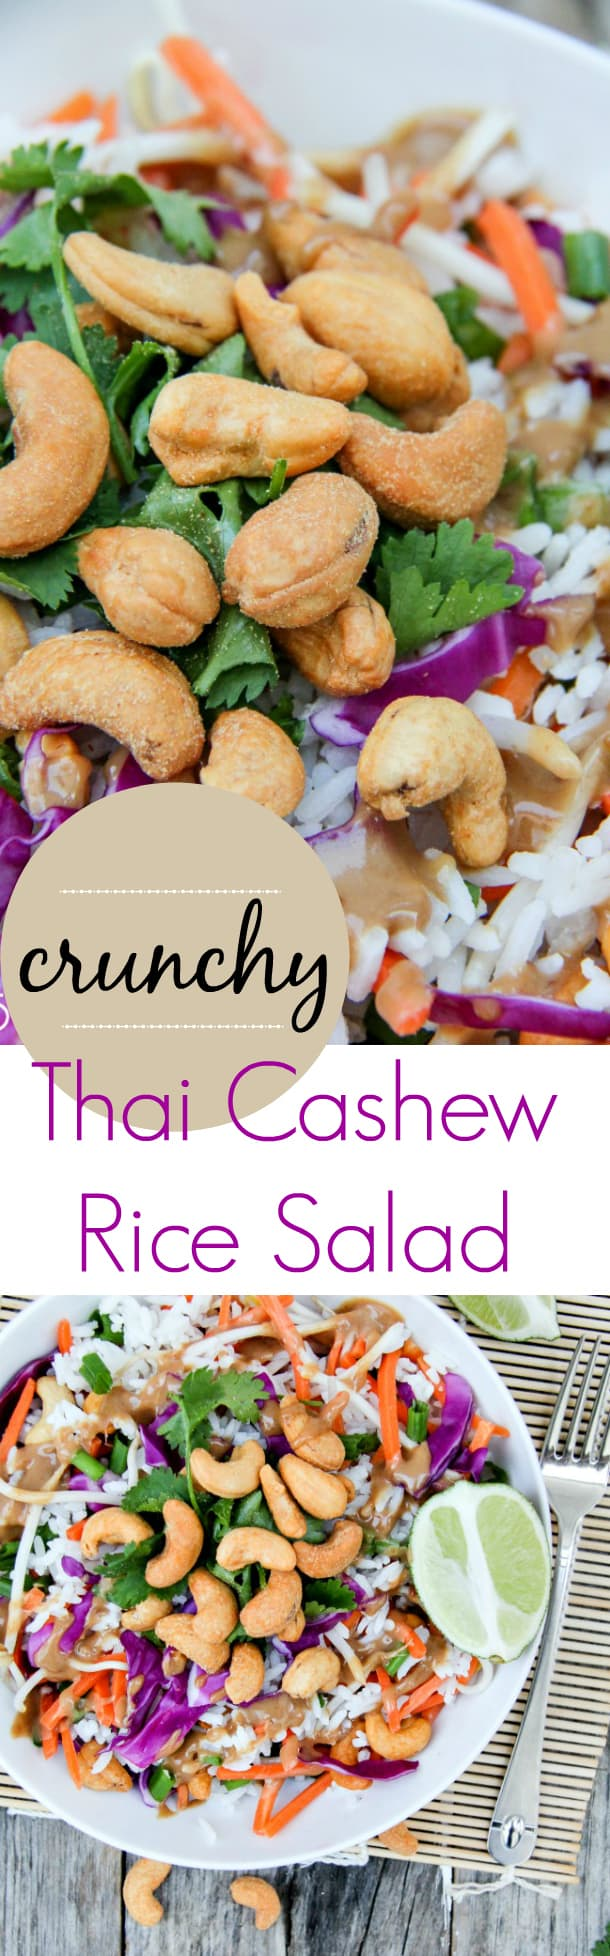 a-crunchy-thai-cashew-rice-salad-recipe